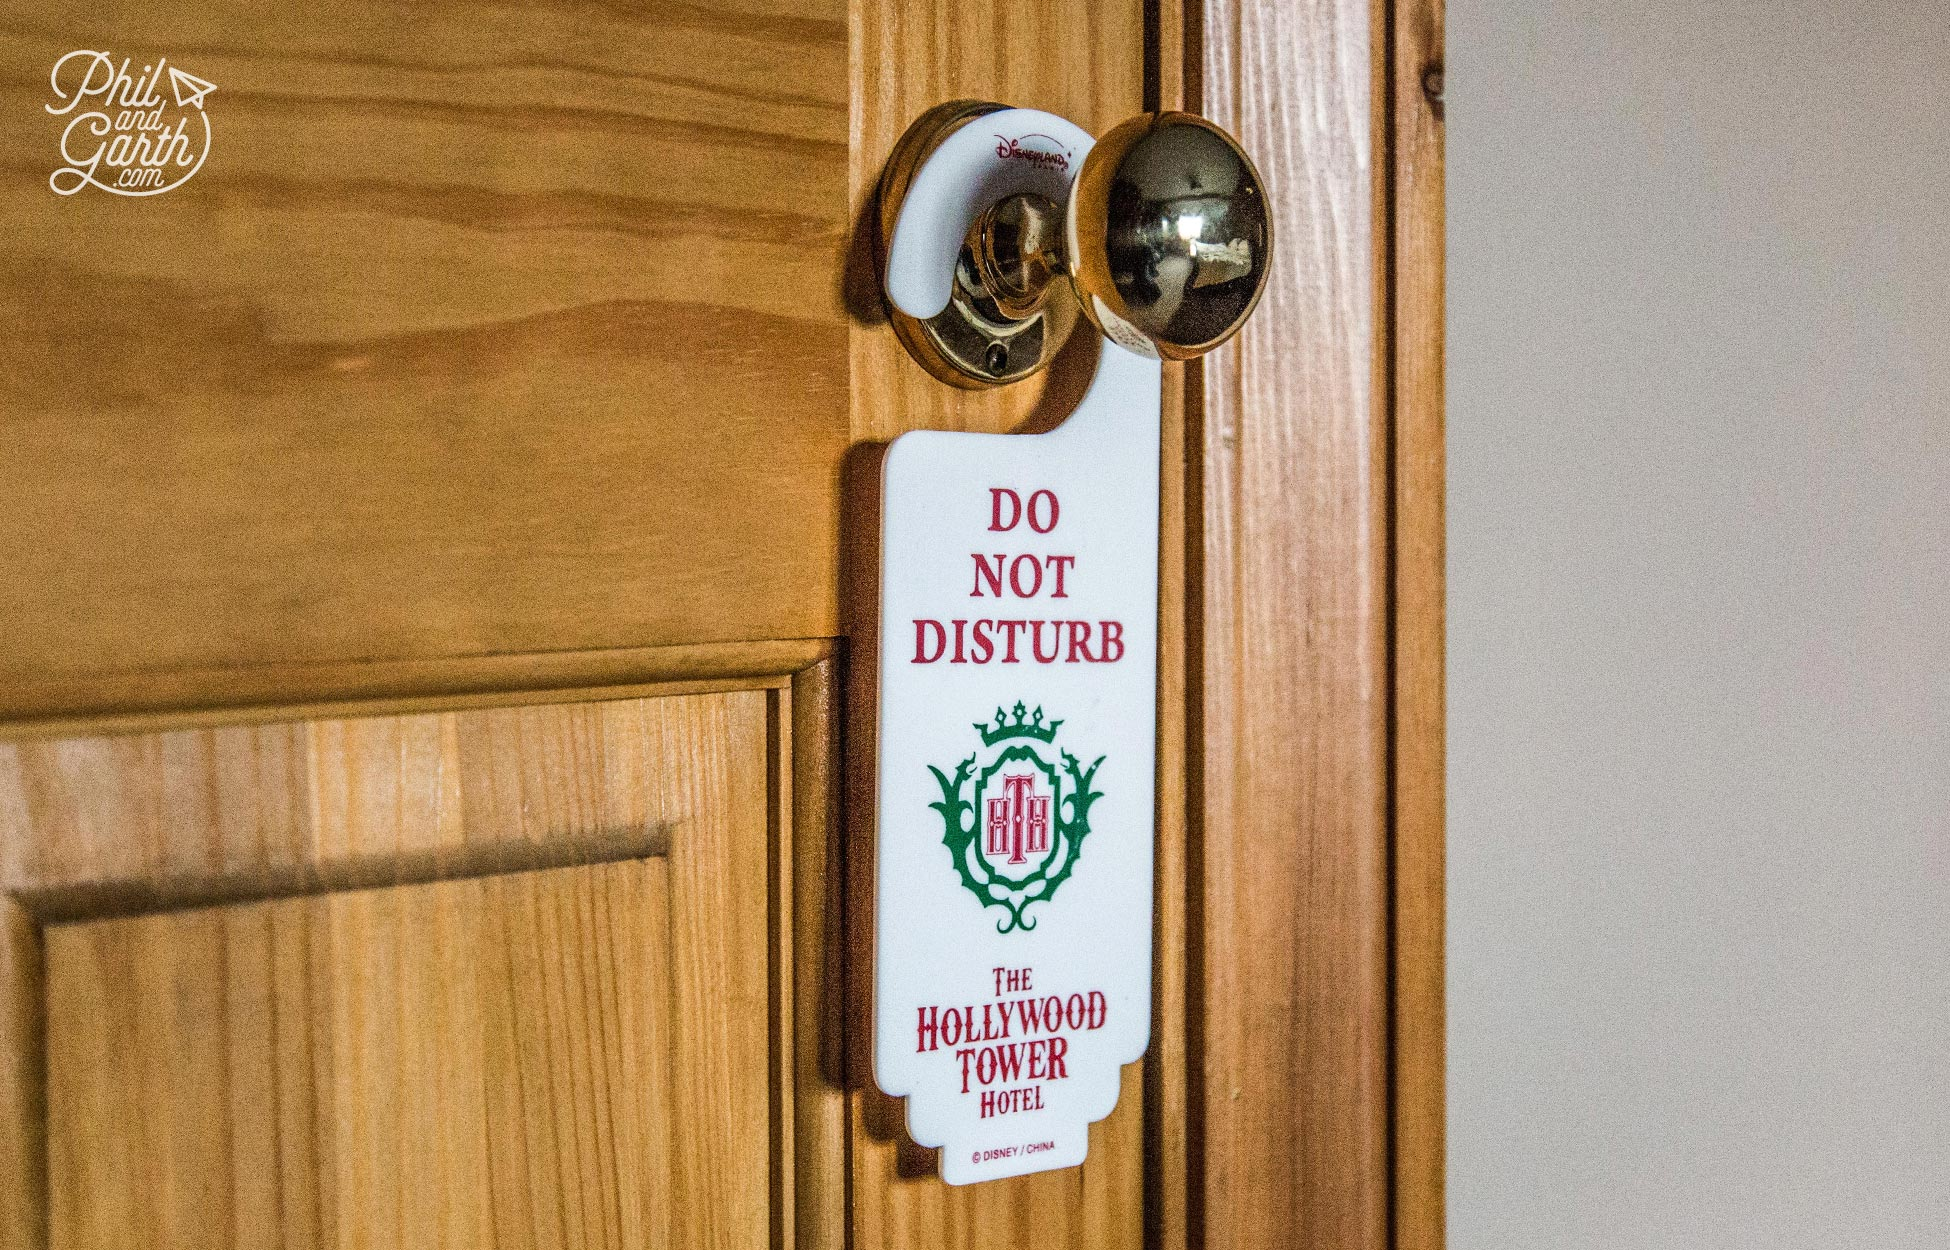 Collect or buy Do Not Disturb signs - This is one we bought from Disneyland Paris